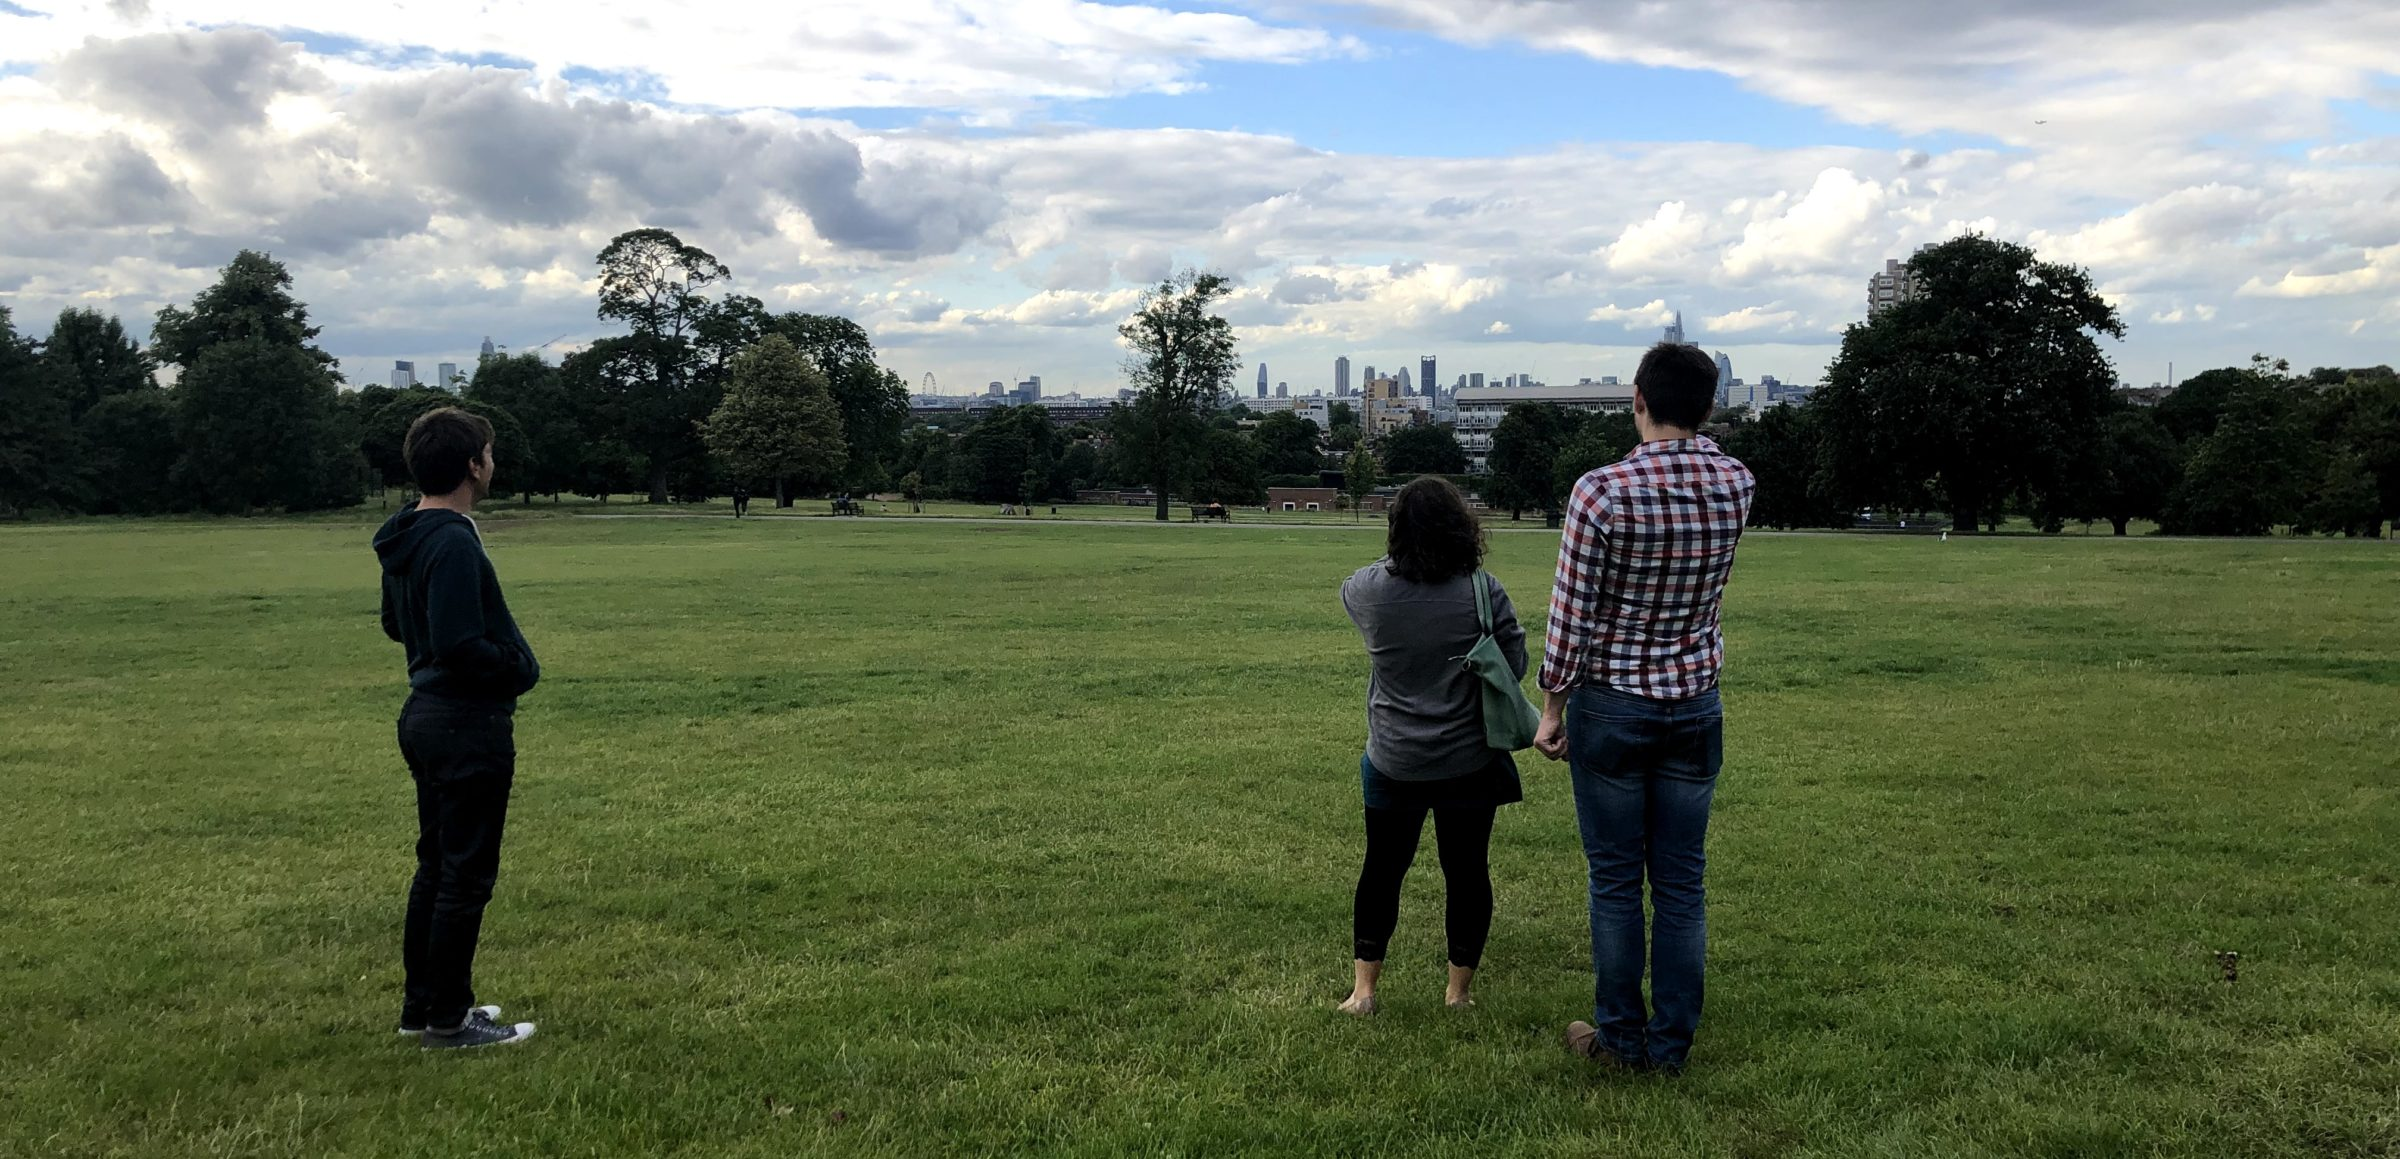 Randi finds the perfect skyline view from the park